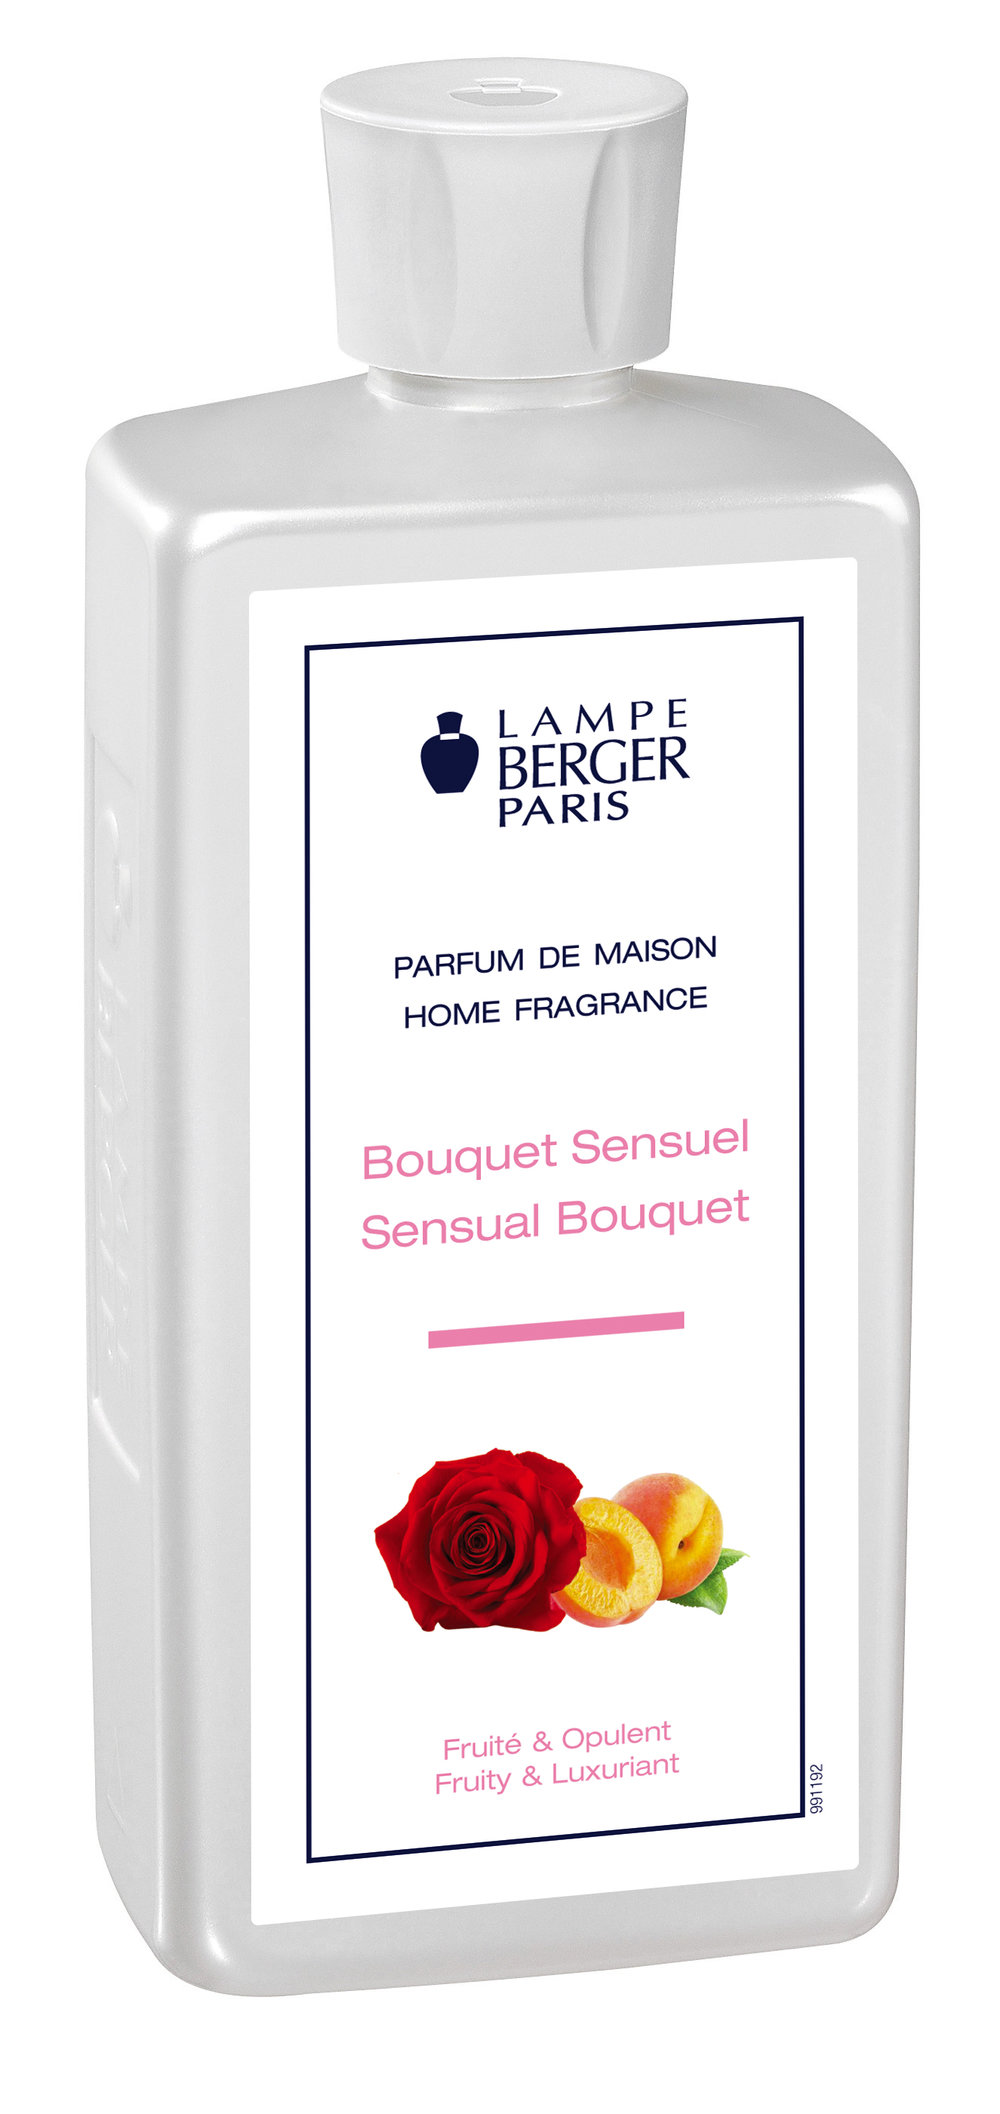 BOUQUET SENSUEL 500ML.jpg